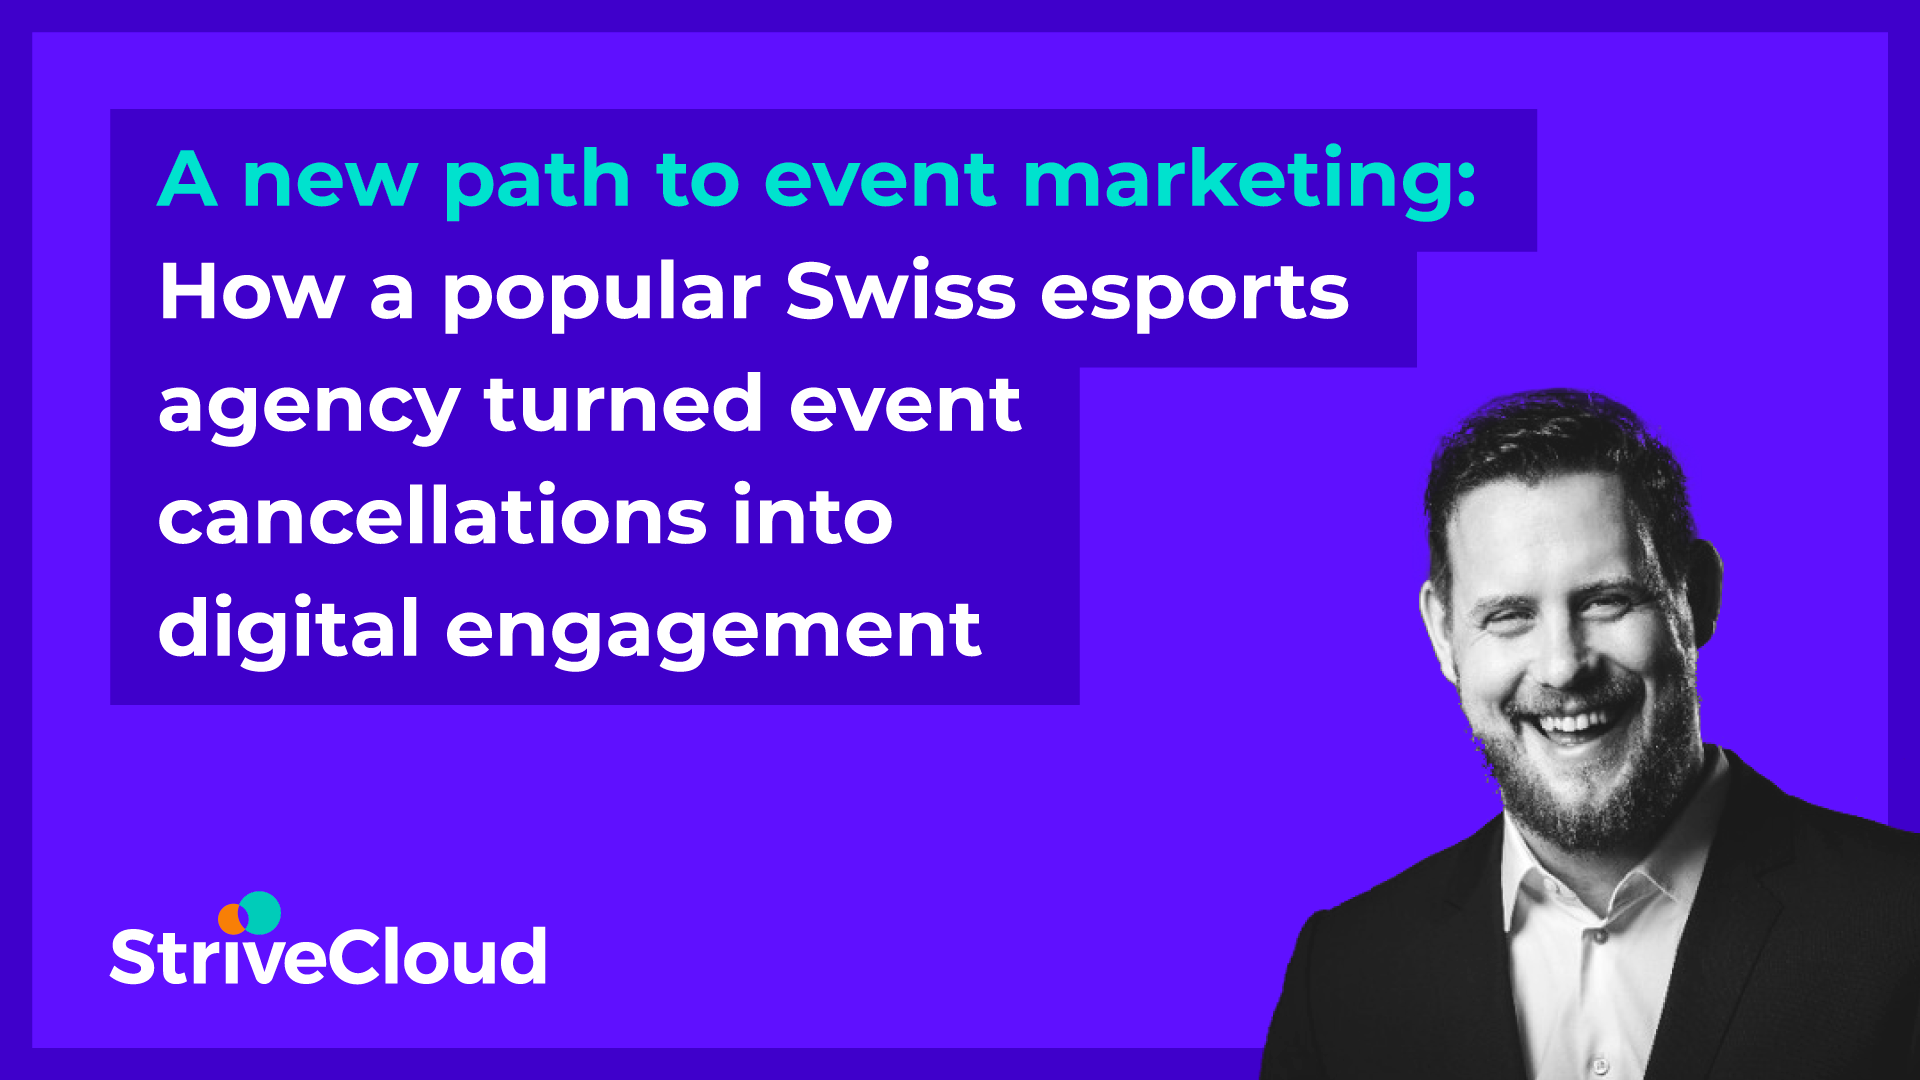 A new path to event marketing: How a popular Swiss esports agency turned event cancellations into digital engagement